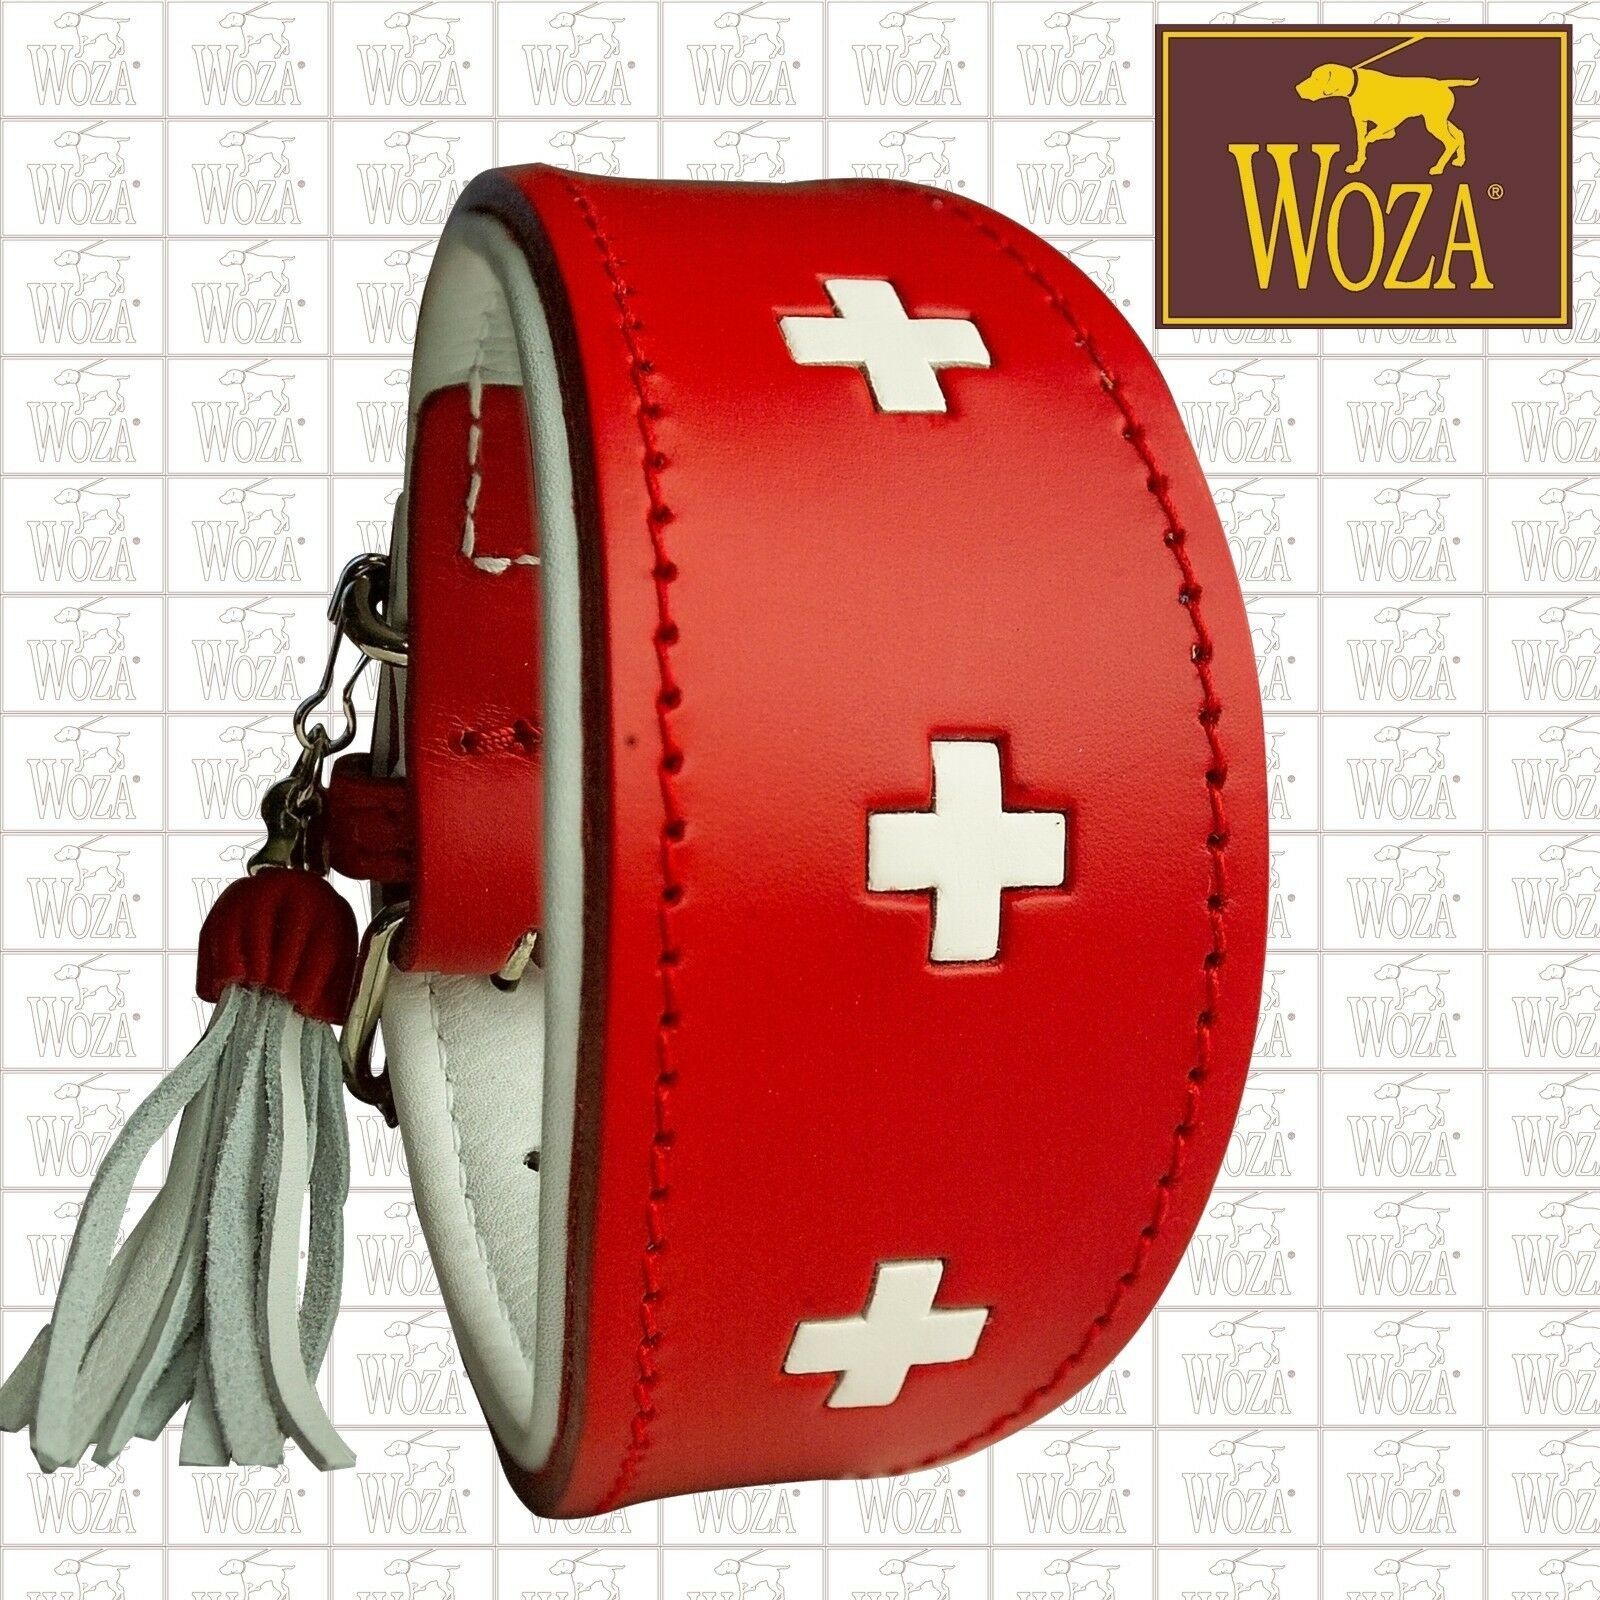 PREMIUM grauHOUND COLLAR WOZA SWISS COW LEATHER LEATHER LEATHER SOFT NAPA HANDMADE TASSEL C31479     | Moderate Kosten